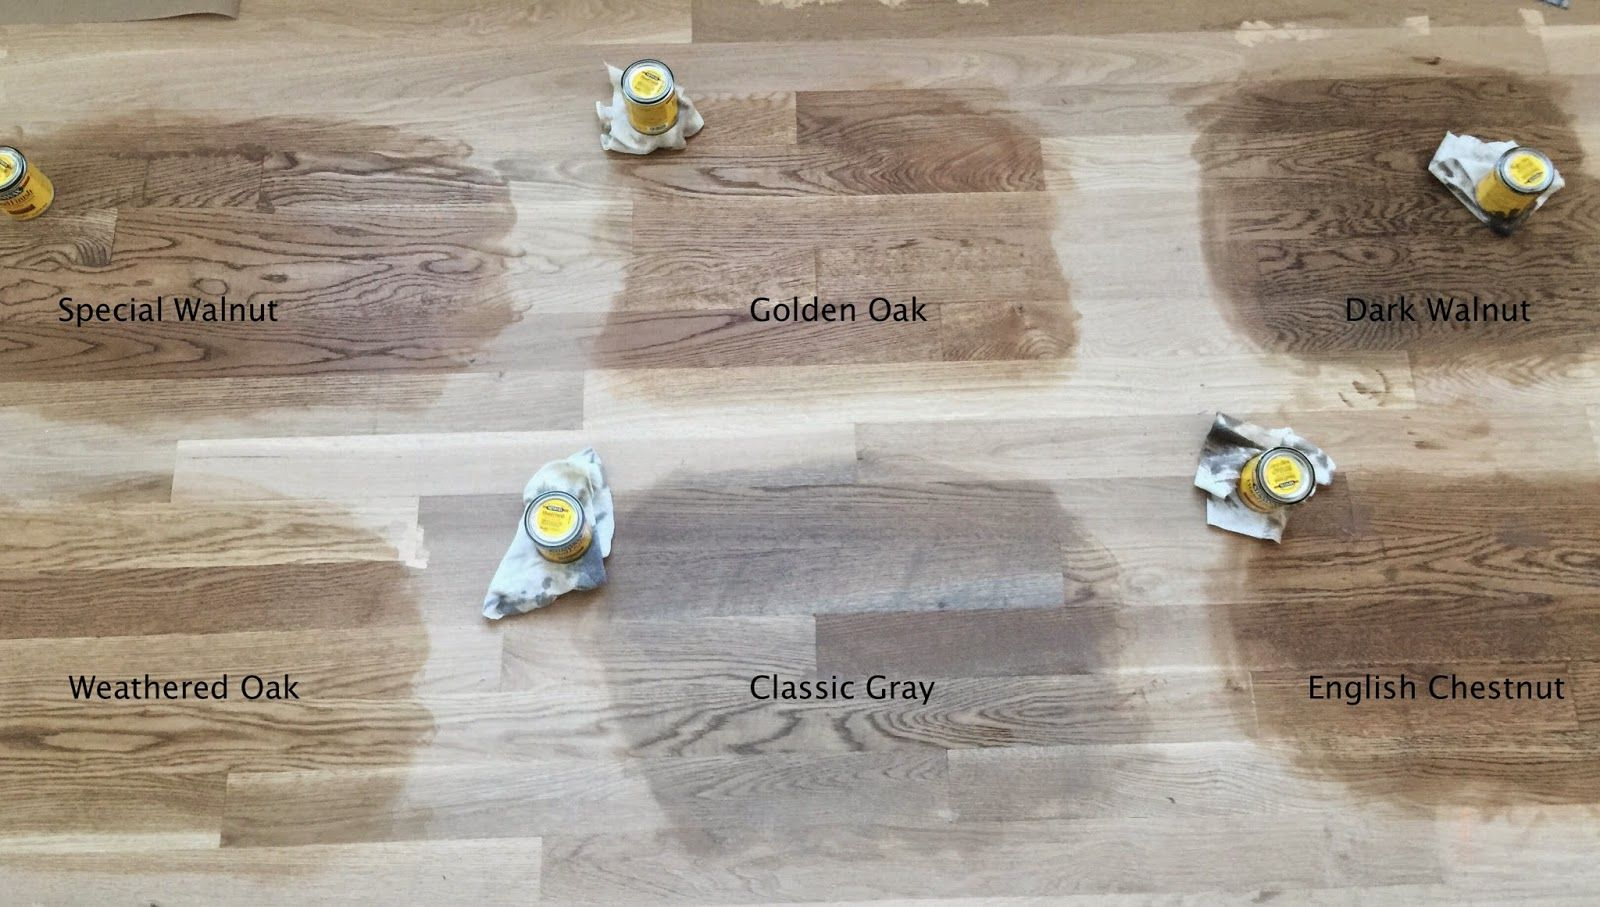 Minwax Floor Stain Test On Red Oak Floors In Natural Light Special Walnut Golden Dark Weathered Clic Gray And English Chestnut